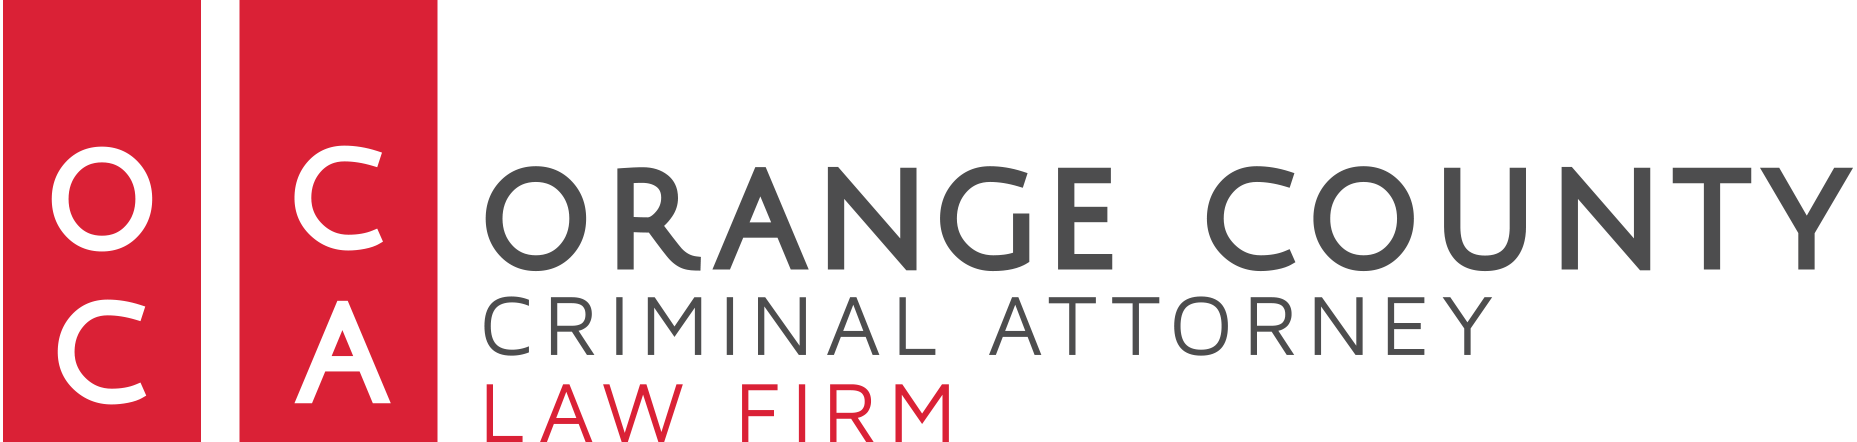 Orange County Criminal Defense Attorney logo